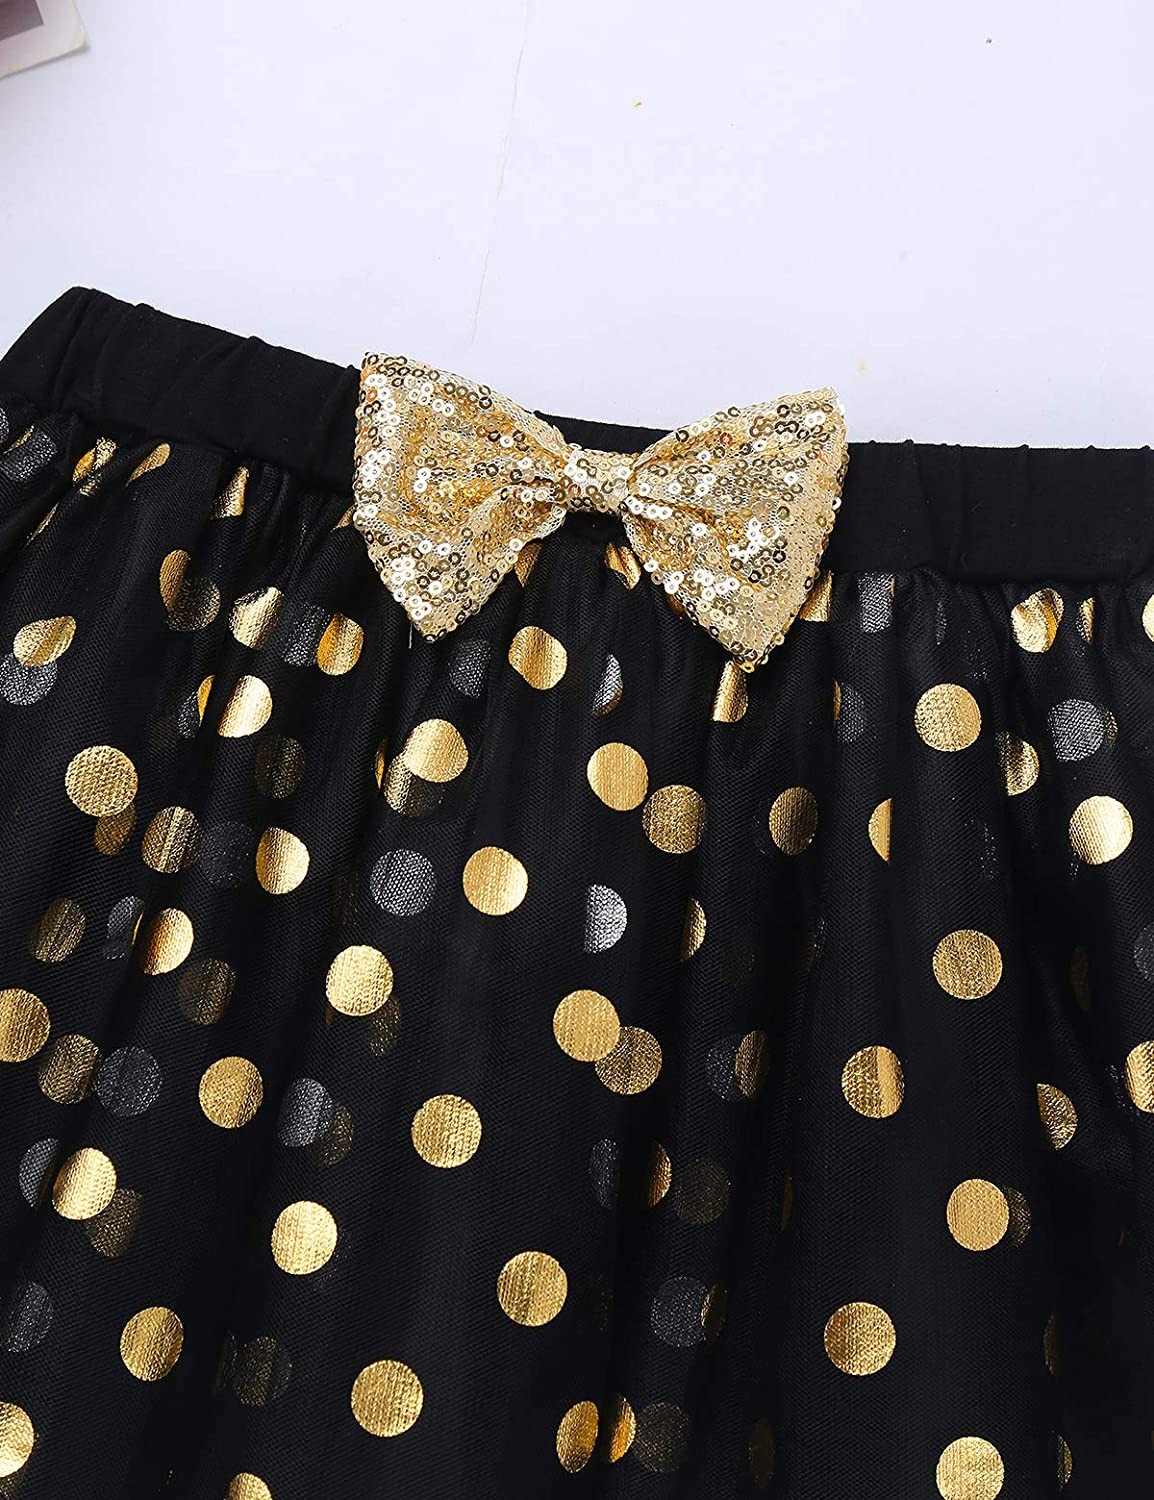 CHICTRY Toddler Little Girls Fancy Sequin Polka Dots Birthday Outfit Racer-Back Shirt with Mesh Tutu Skirt Set